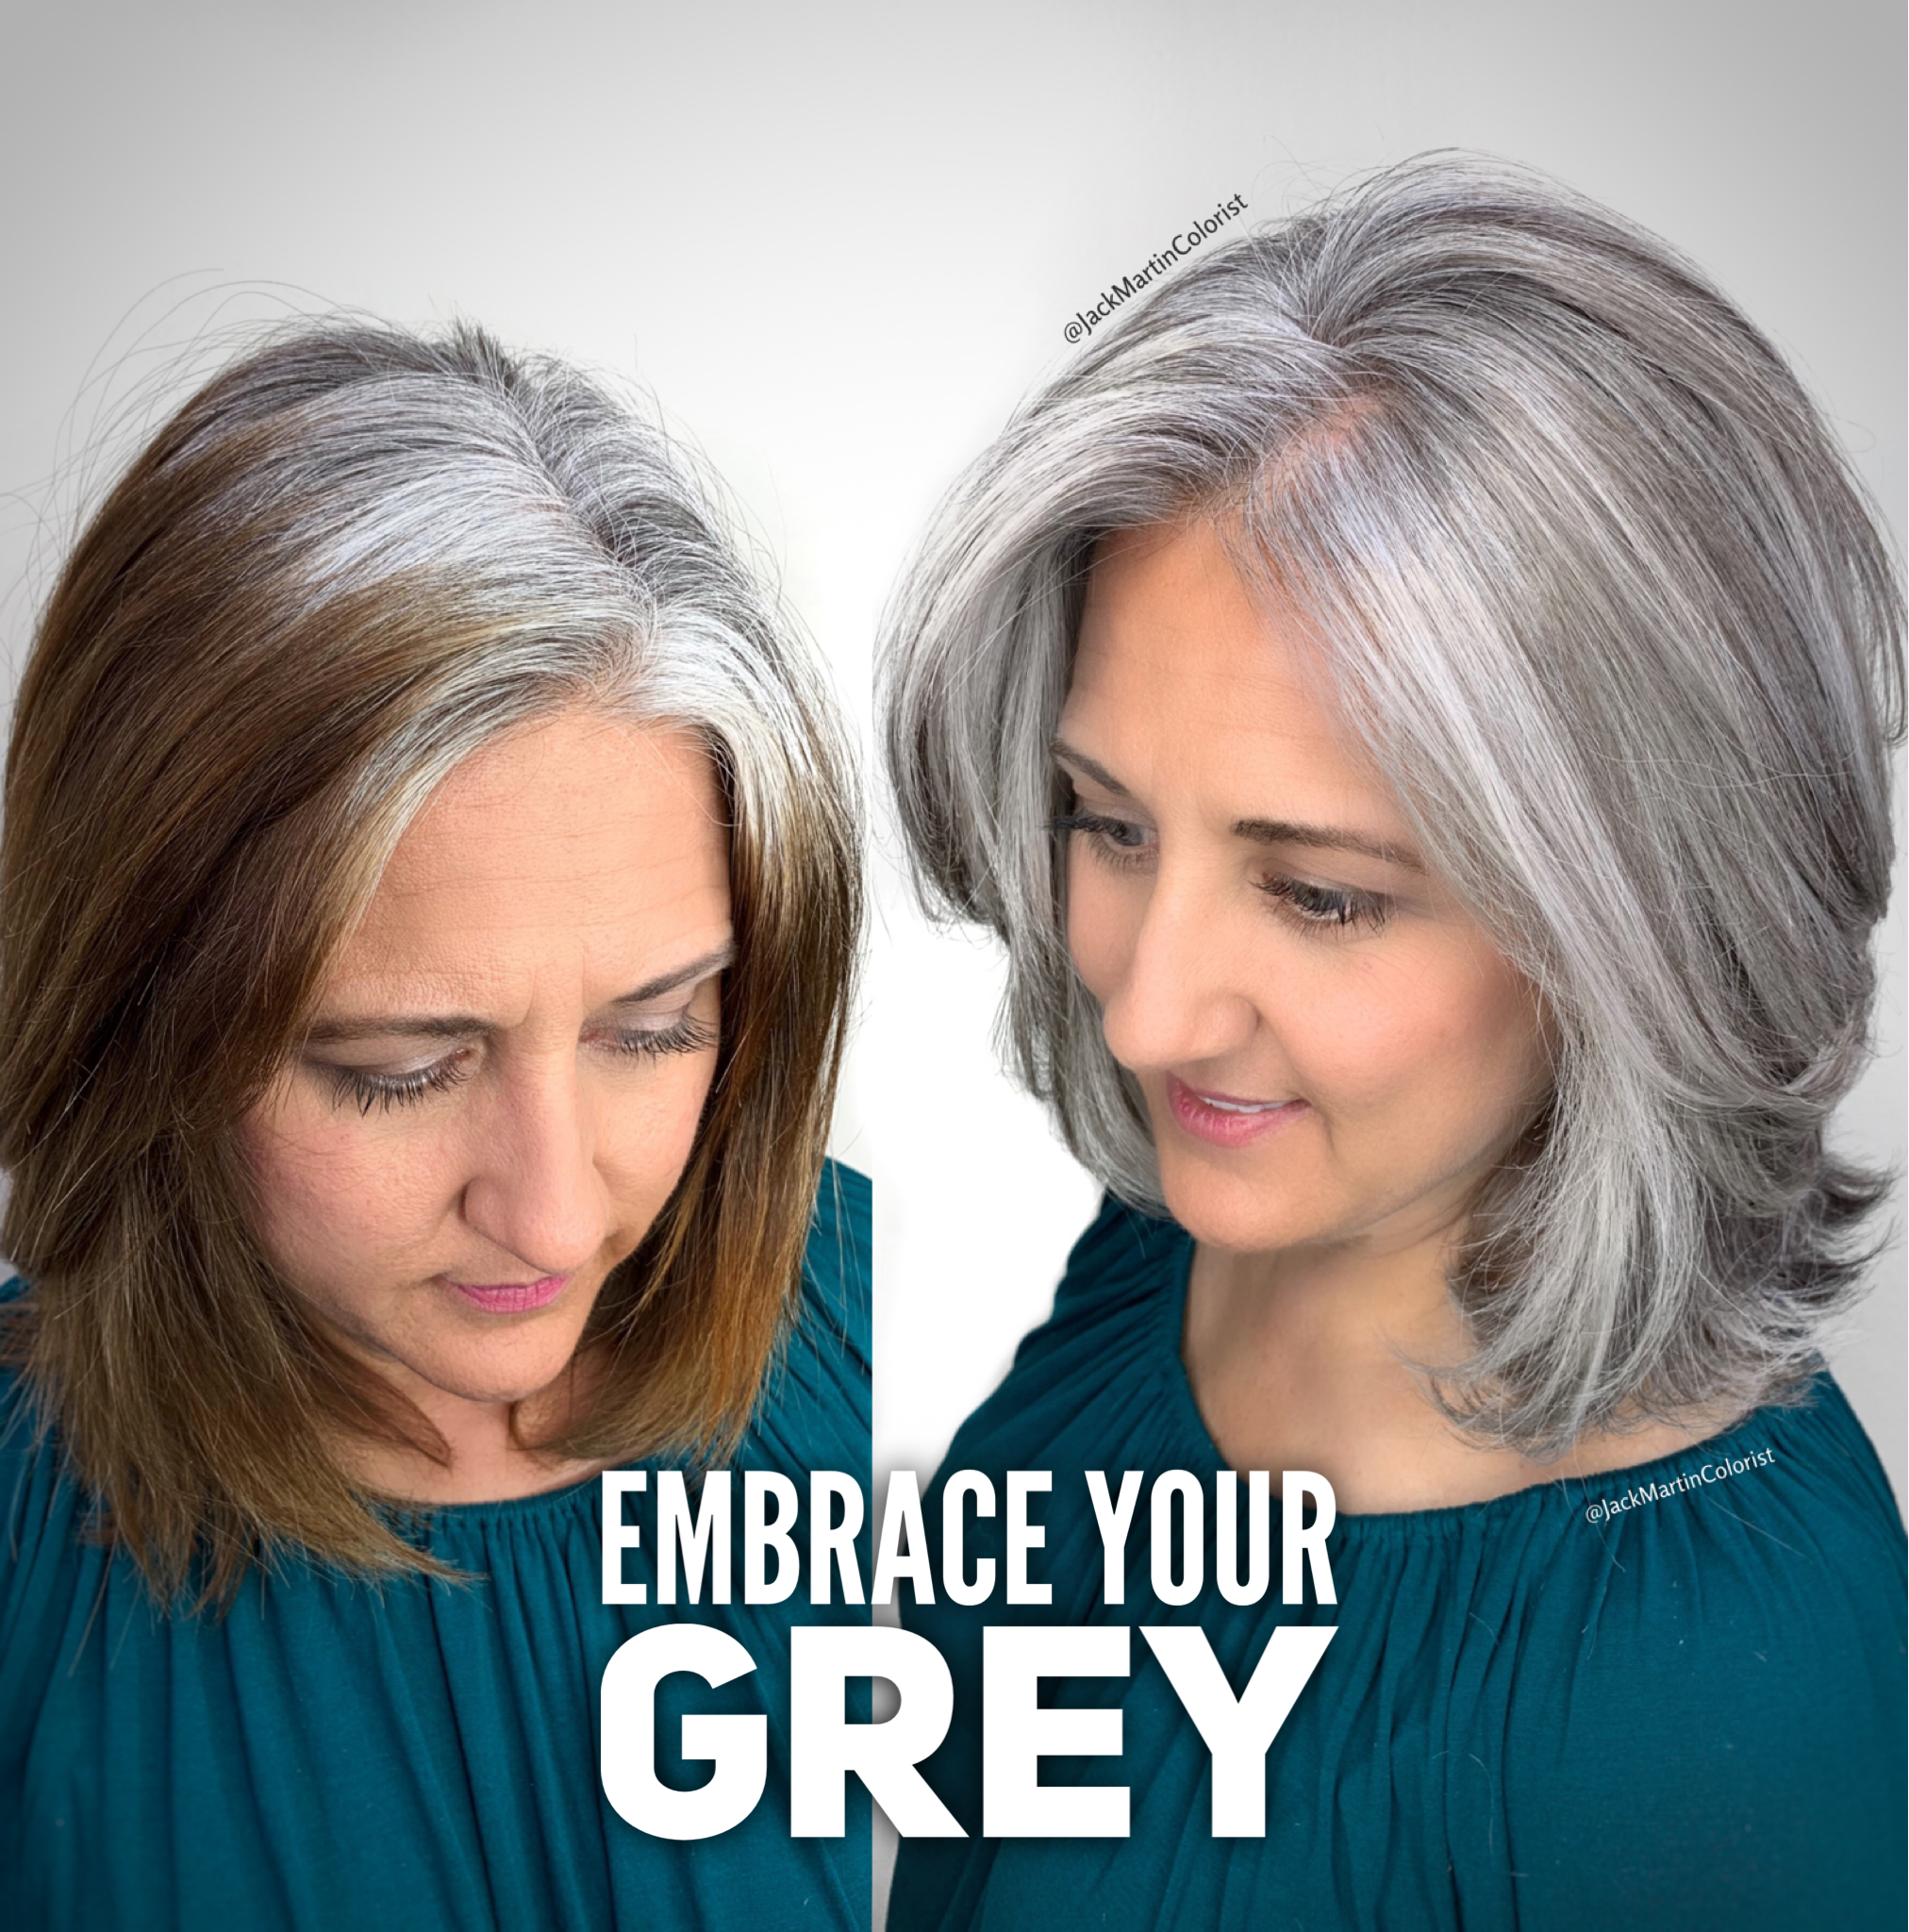 Embrace Your Grey And Stop Coloring Check The Link Below On How I Achieved This Transformation Blending Gray Hair Pretty Gray Hair Gray Hair Highlights